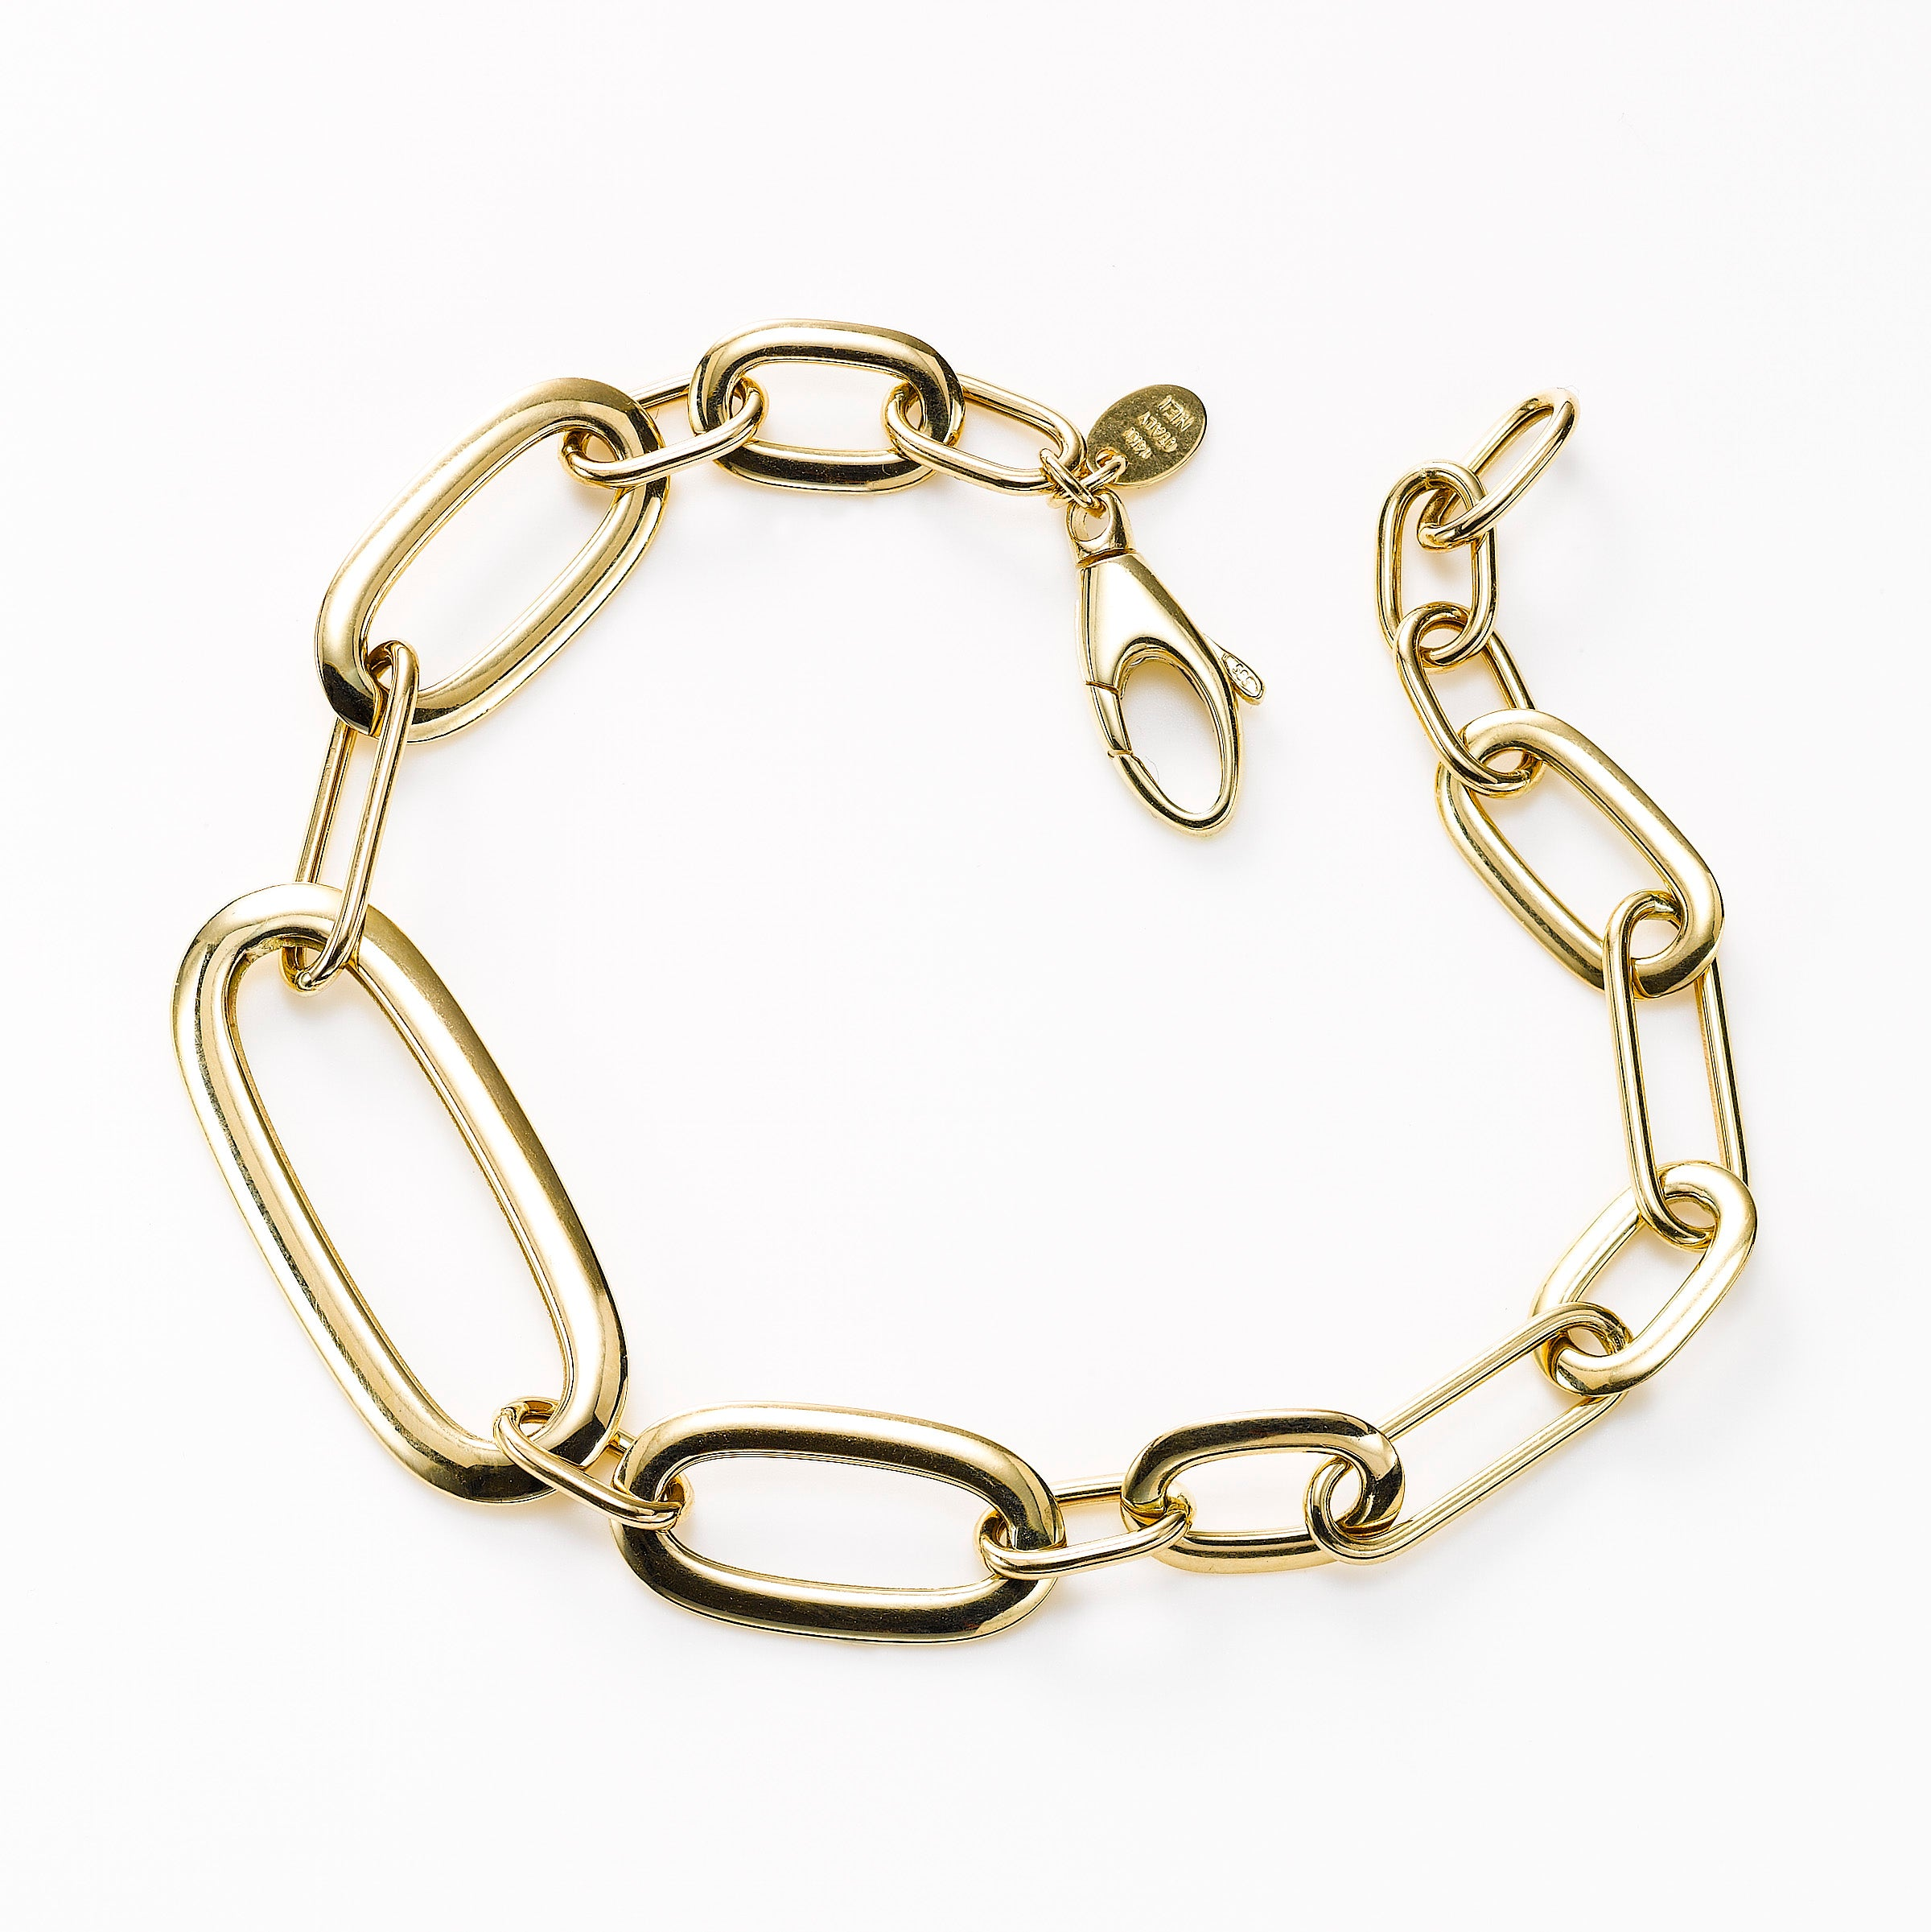 Graduated Oval Link Bracelet, 14K Yellow Gold